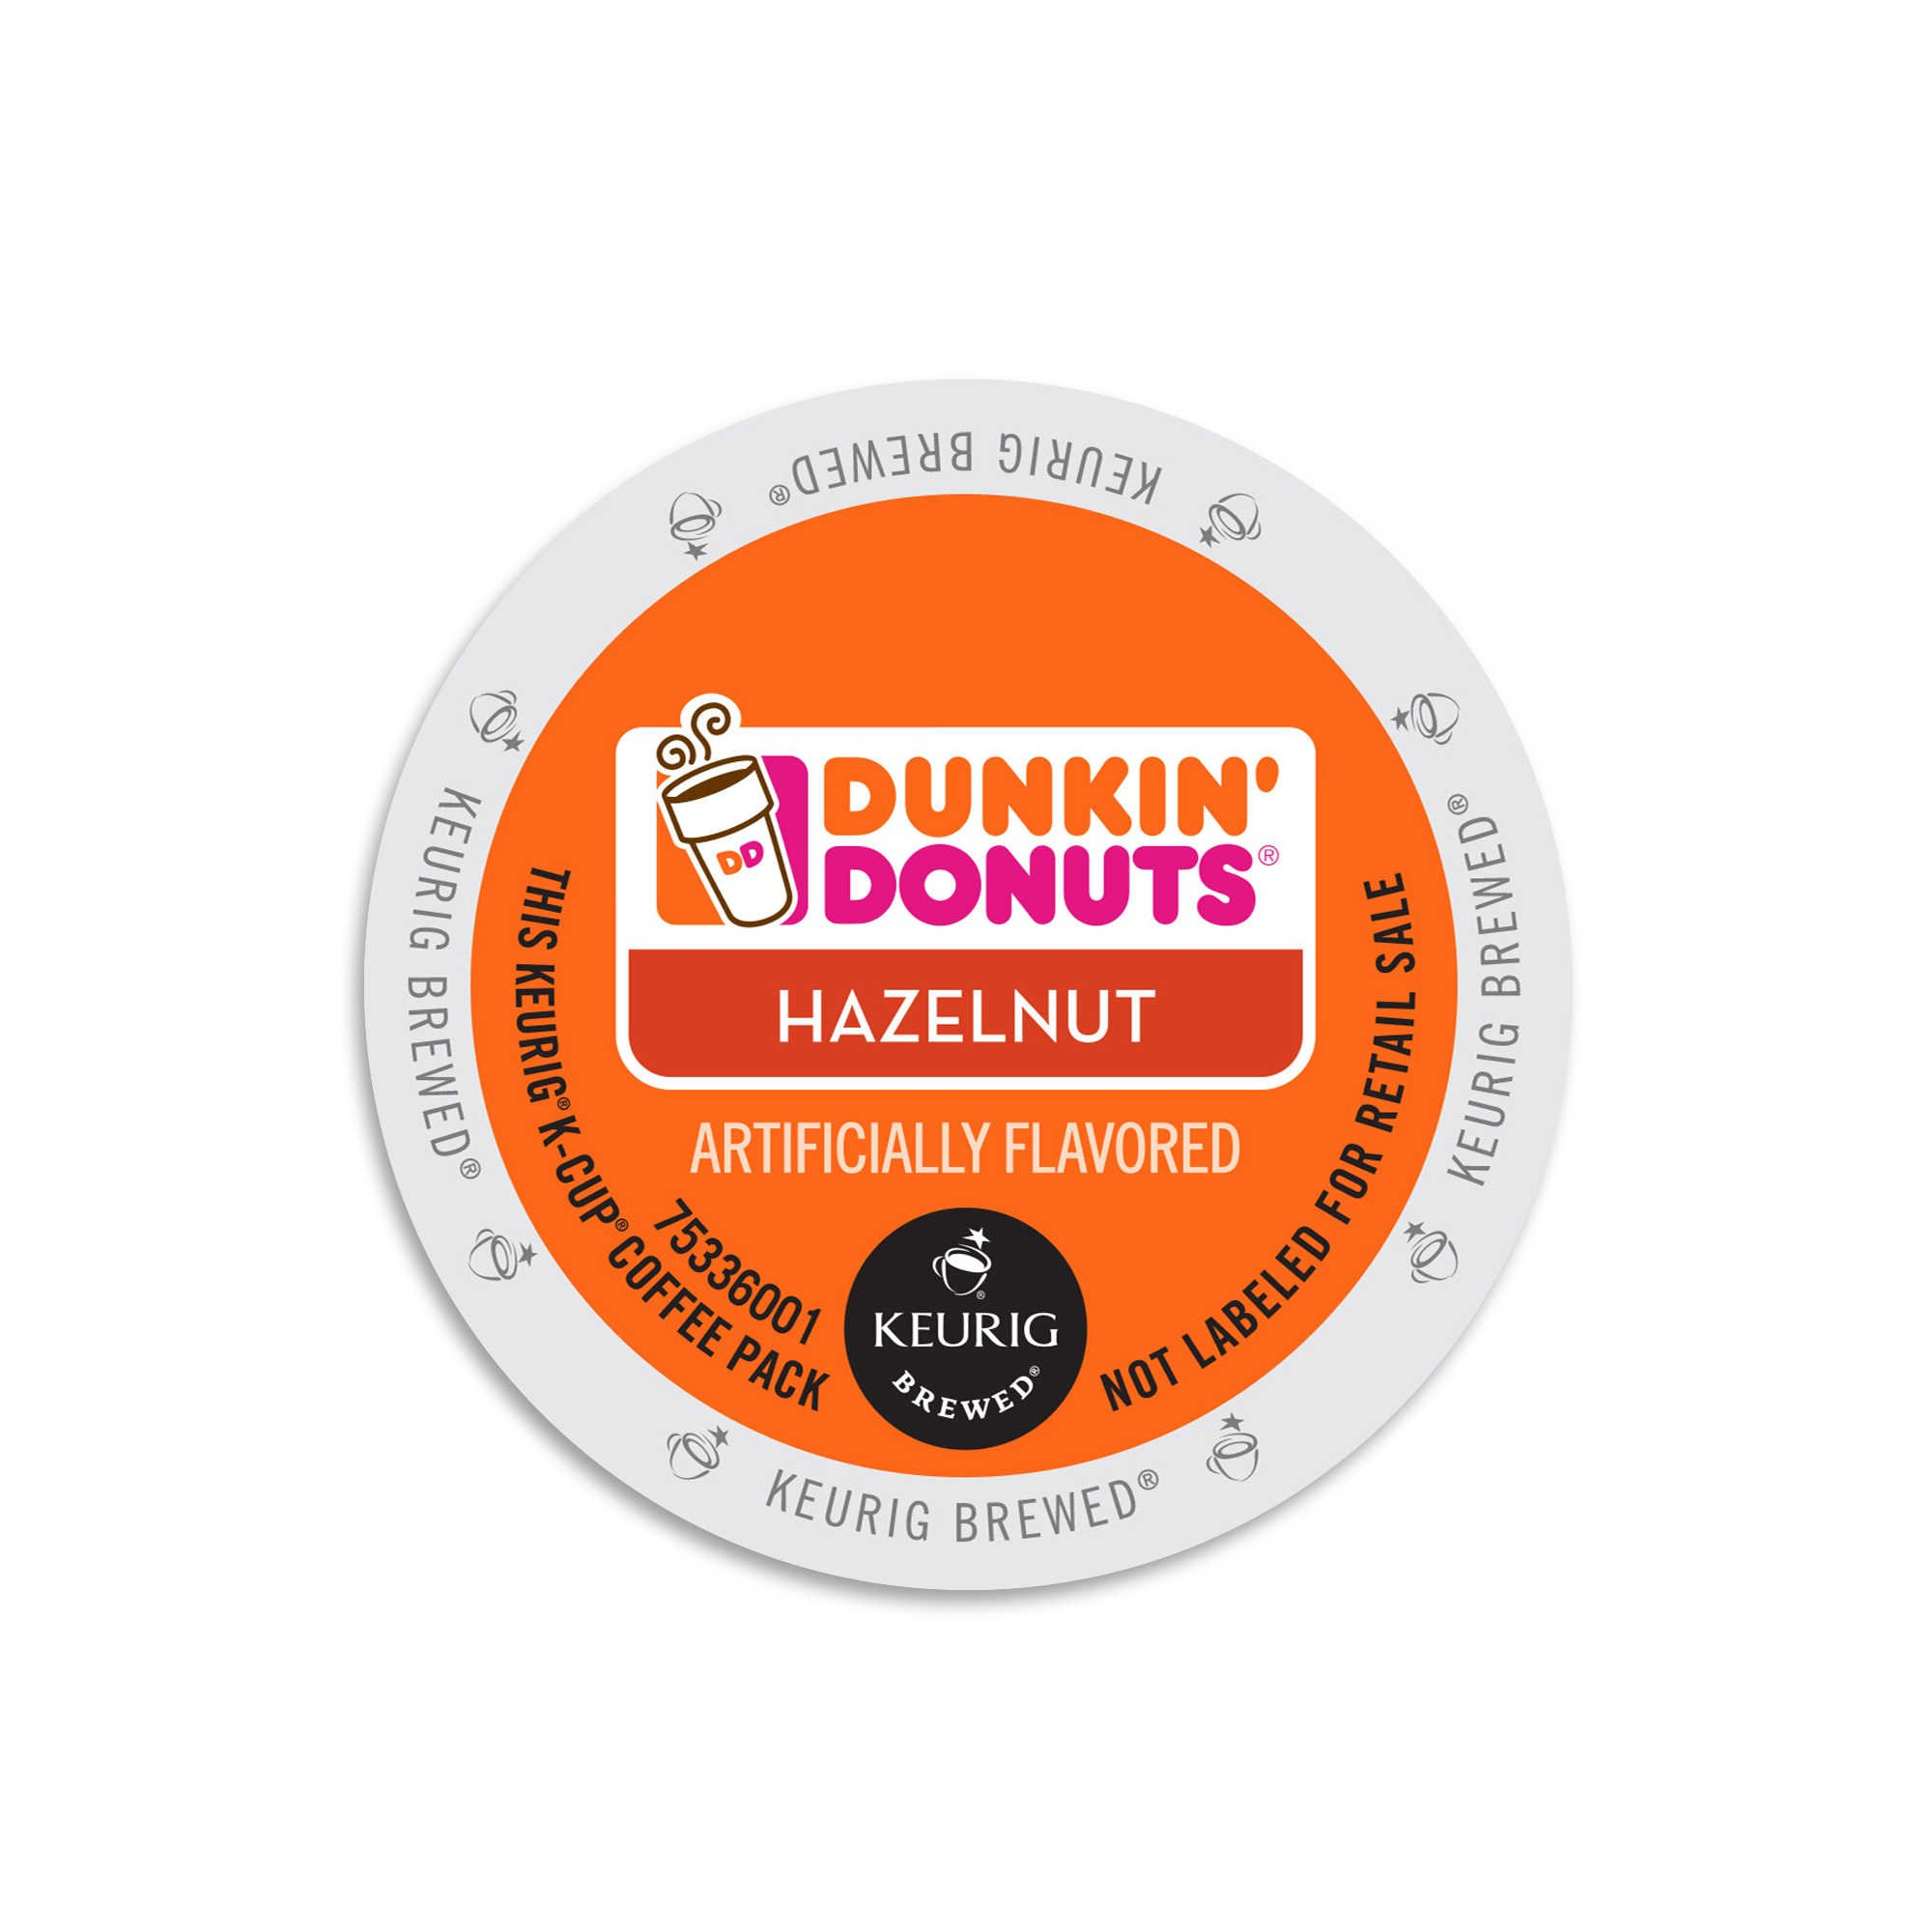 Dunkin Donuts Hazelnut, Flavored Coffee K-Cups For Keurig K Cup Brewers (96 Count) by Dunkin' Donuts